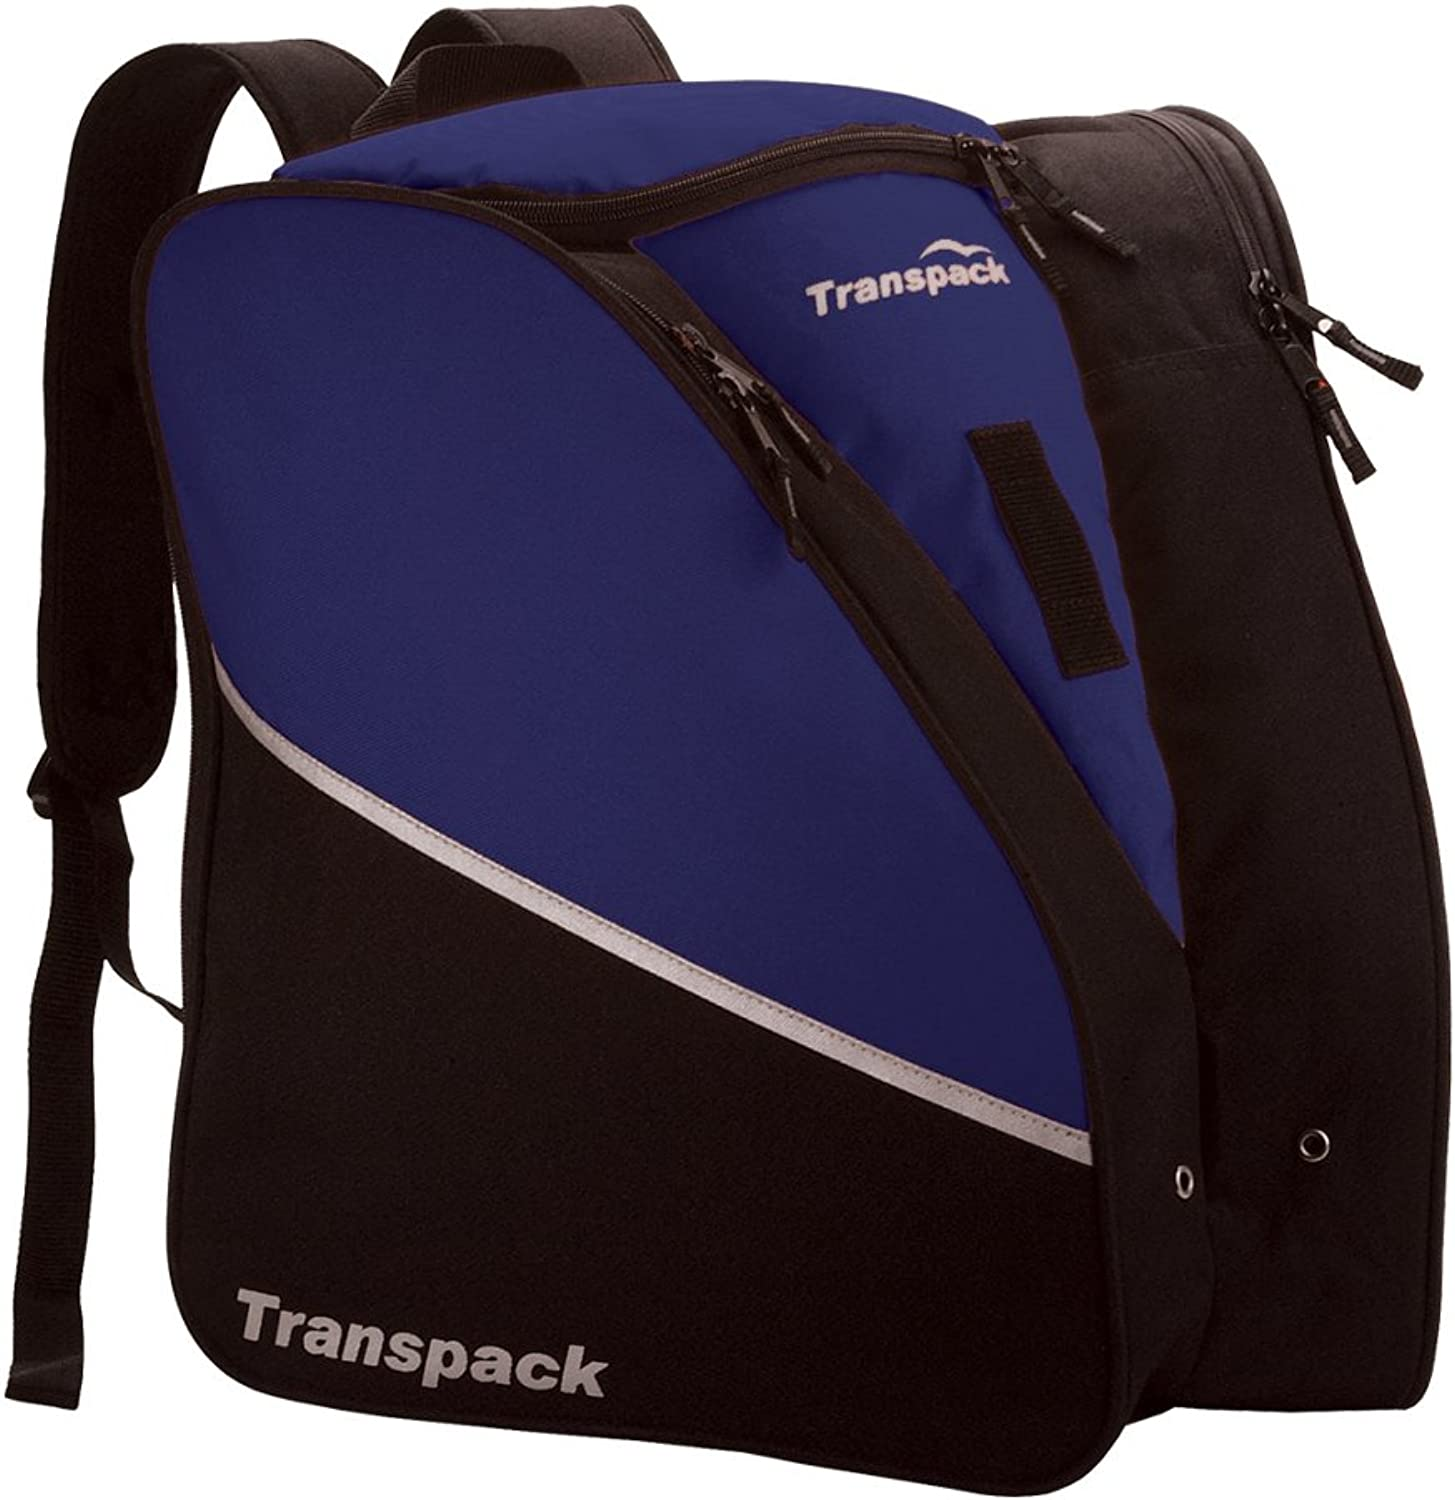 Transpack Edge Junior Ski Boot Bag 2012 by Transpack